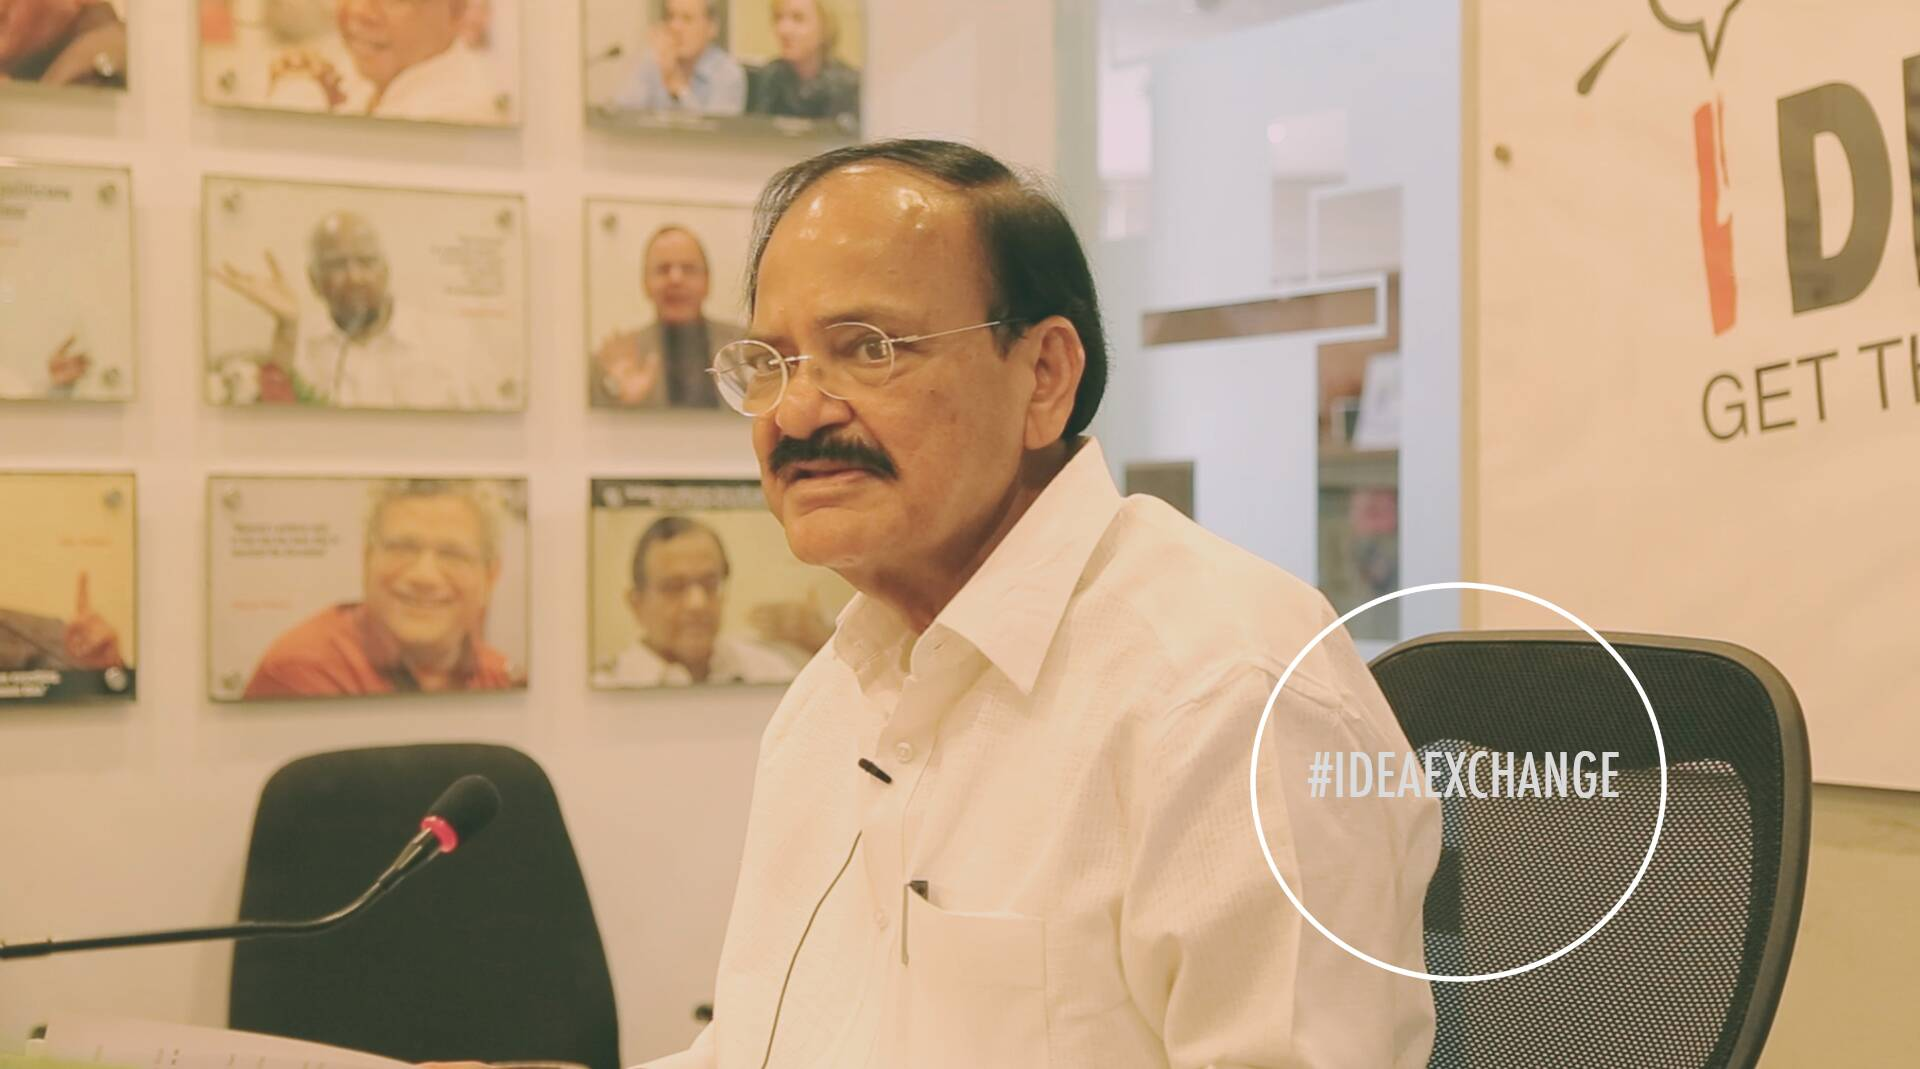 Free power means low power which means no power: Venkaiah Naidu on the power crisis